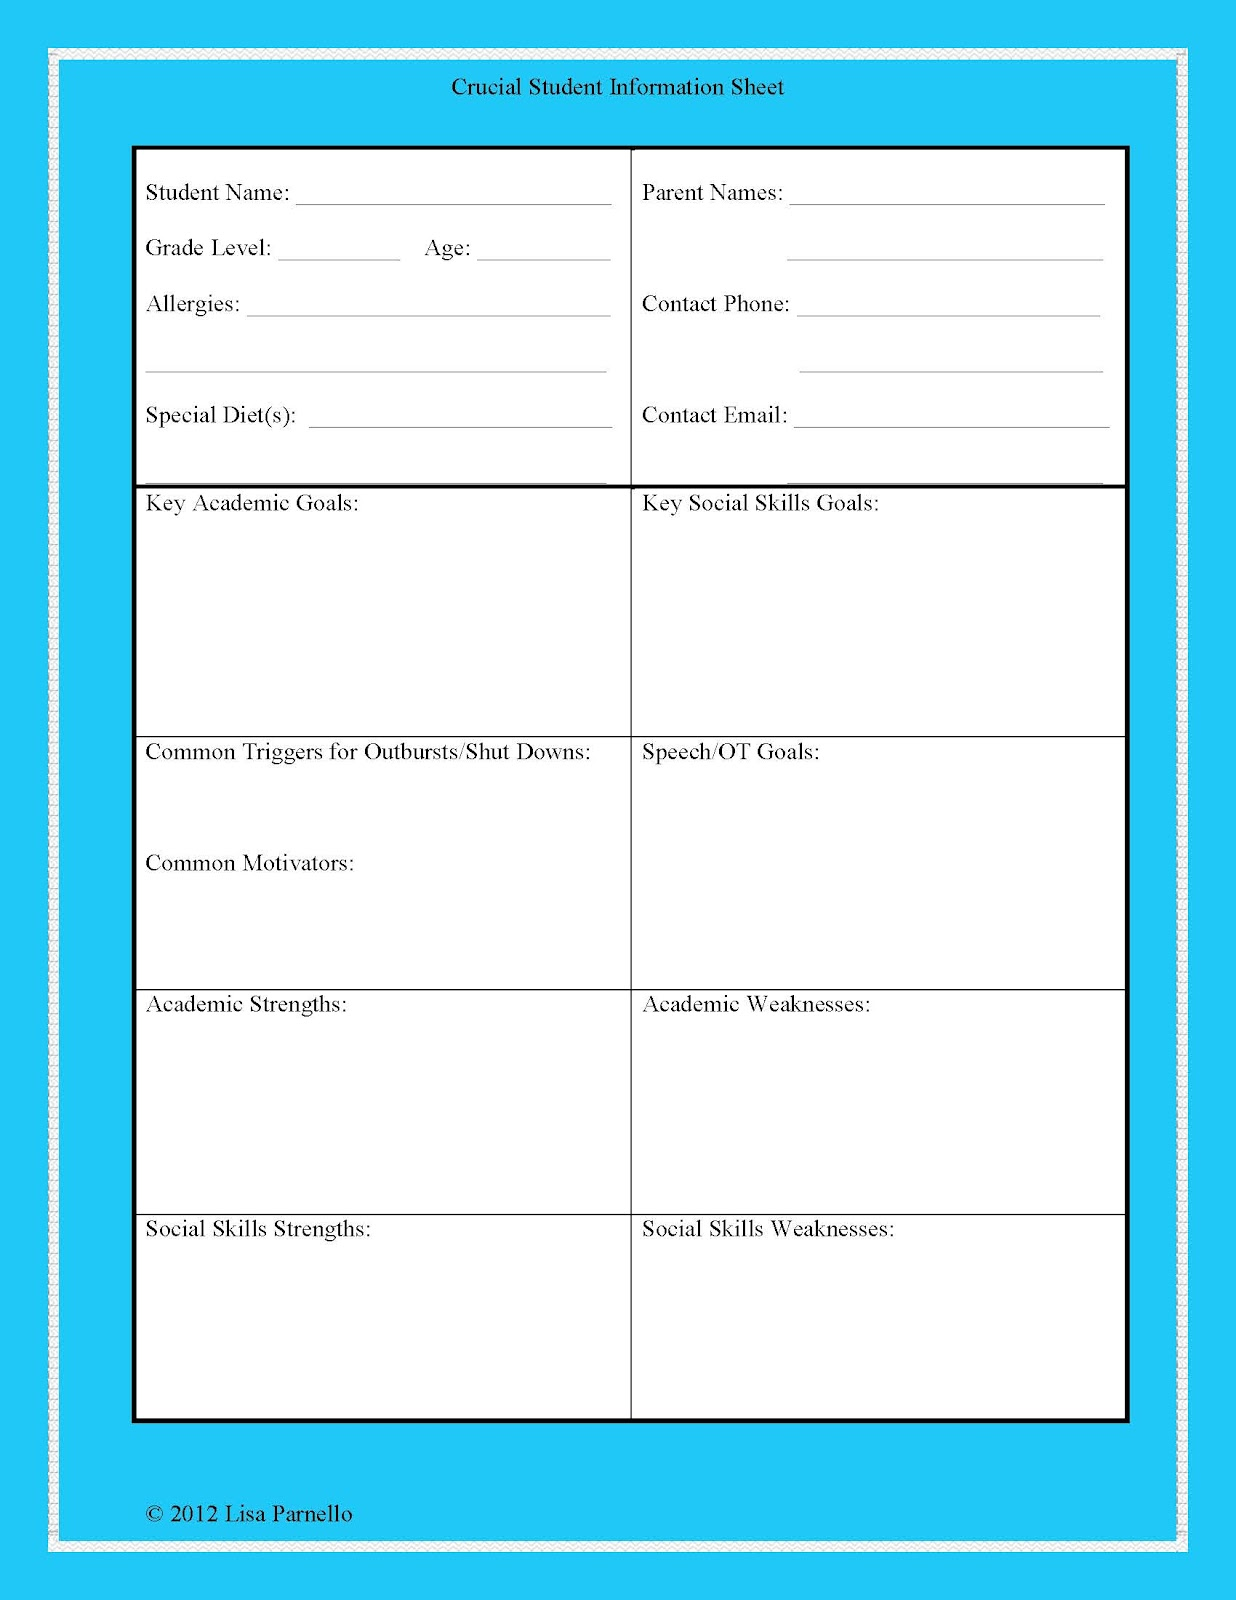 The Lower Elementary Cottage Student Information Sheet